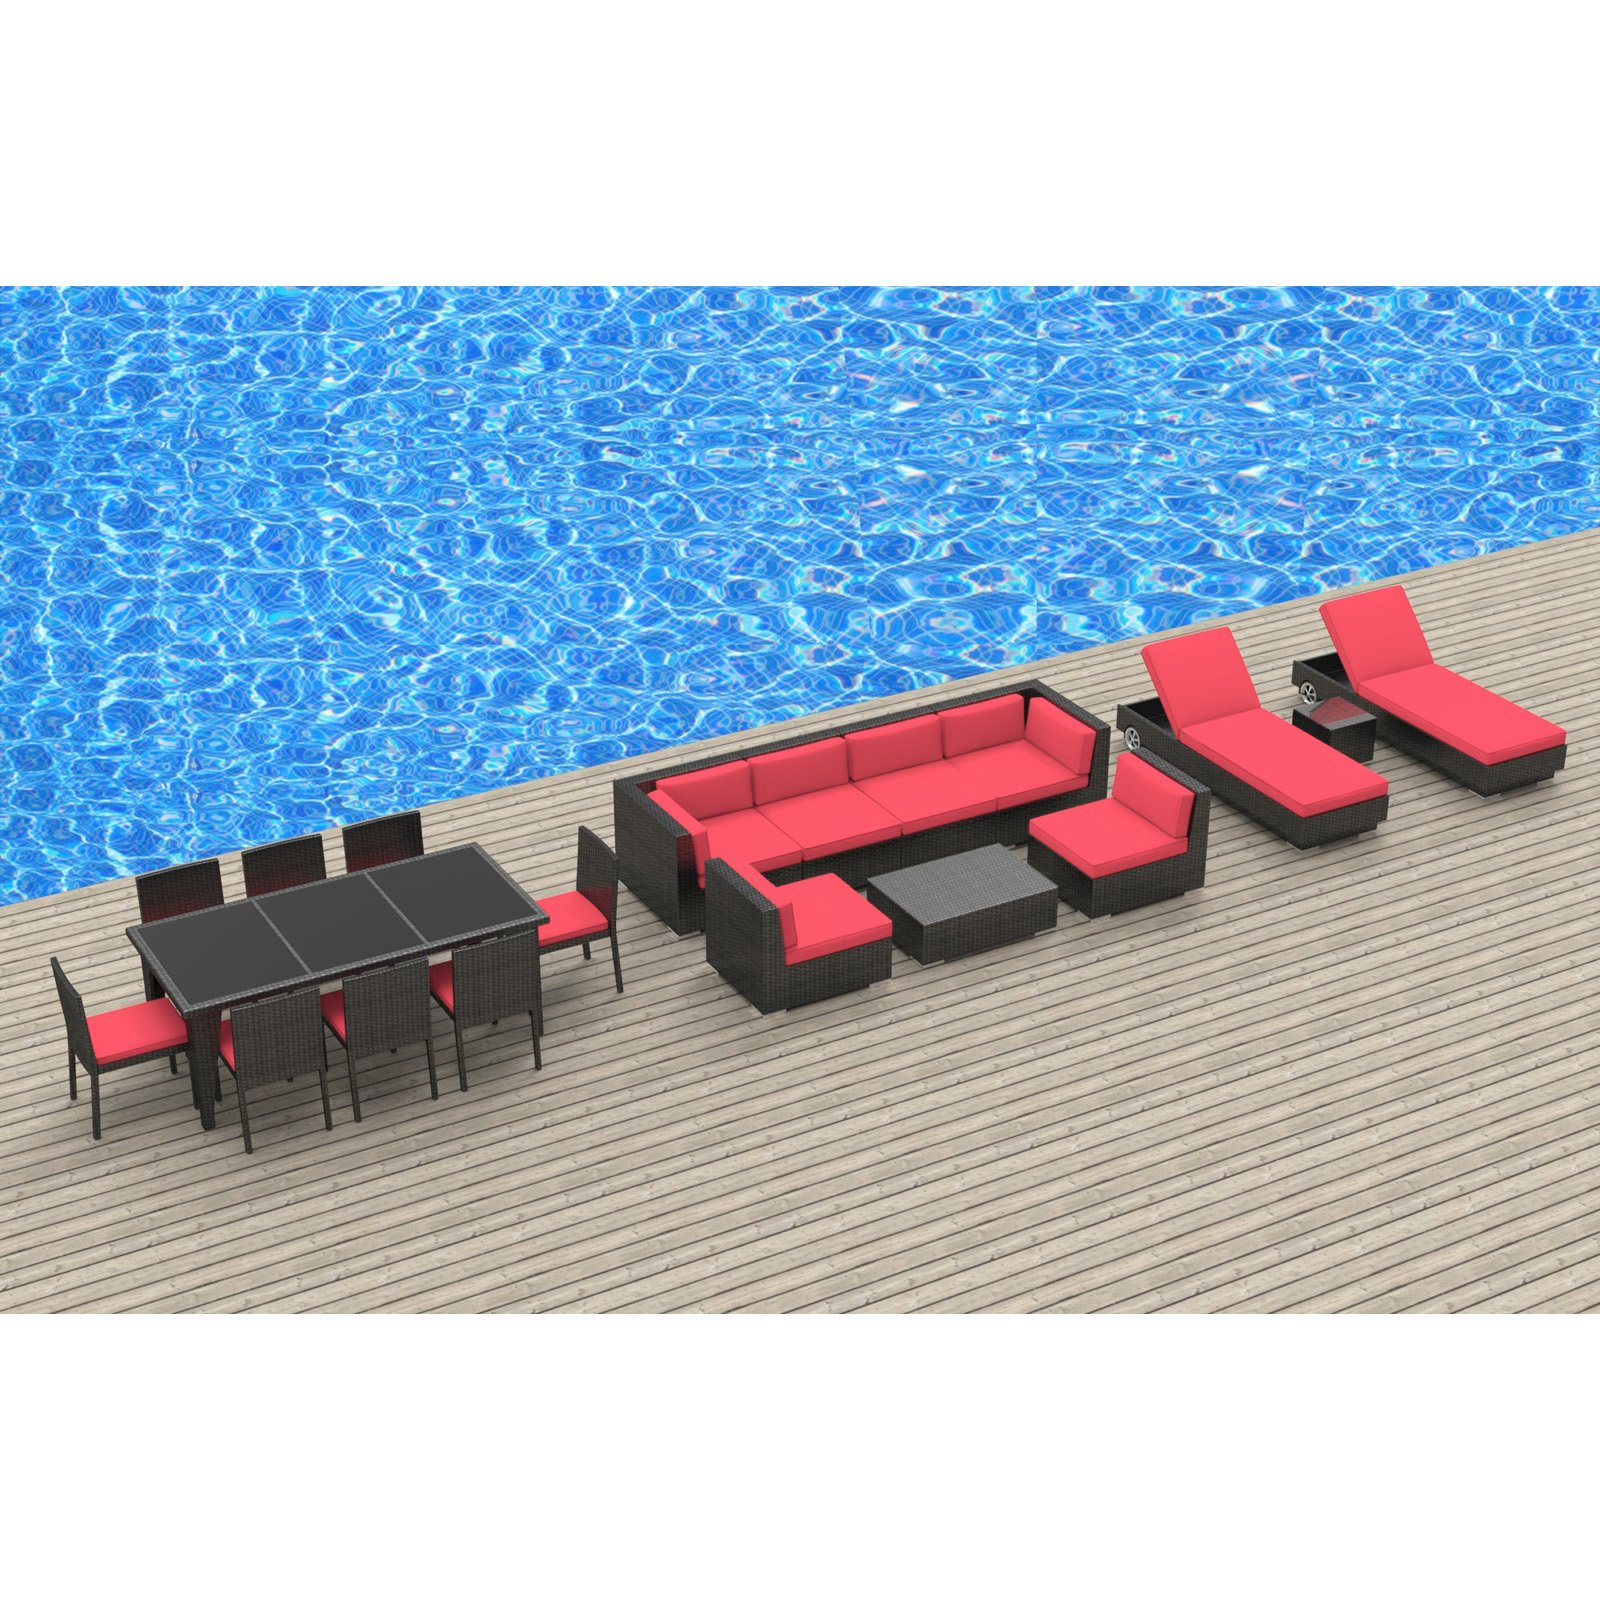 Urban Furnishing 19 Piece Outdoor Dining and Patio Furniture Set